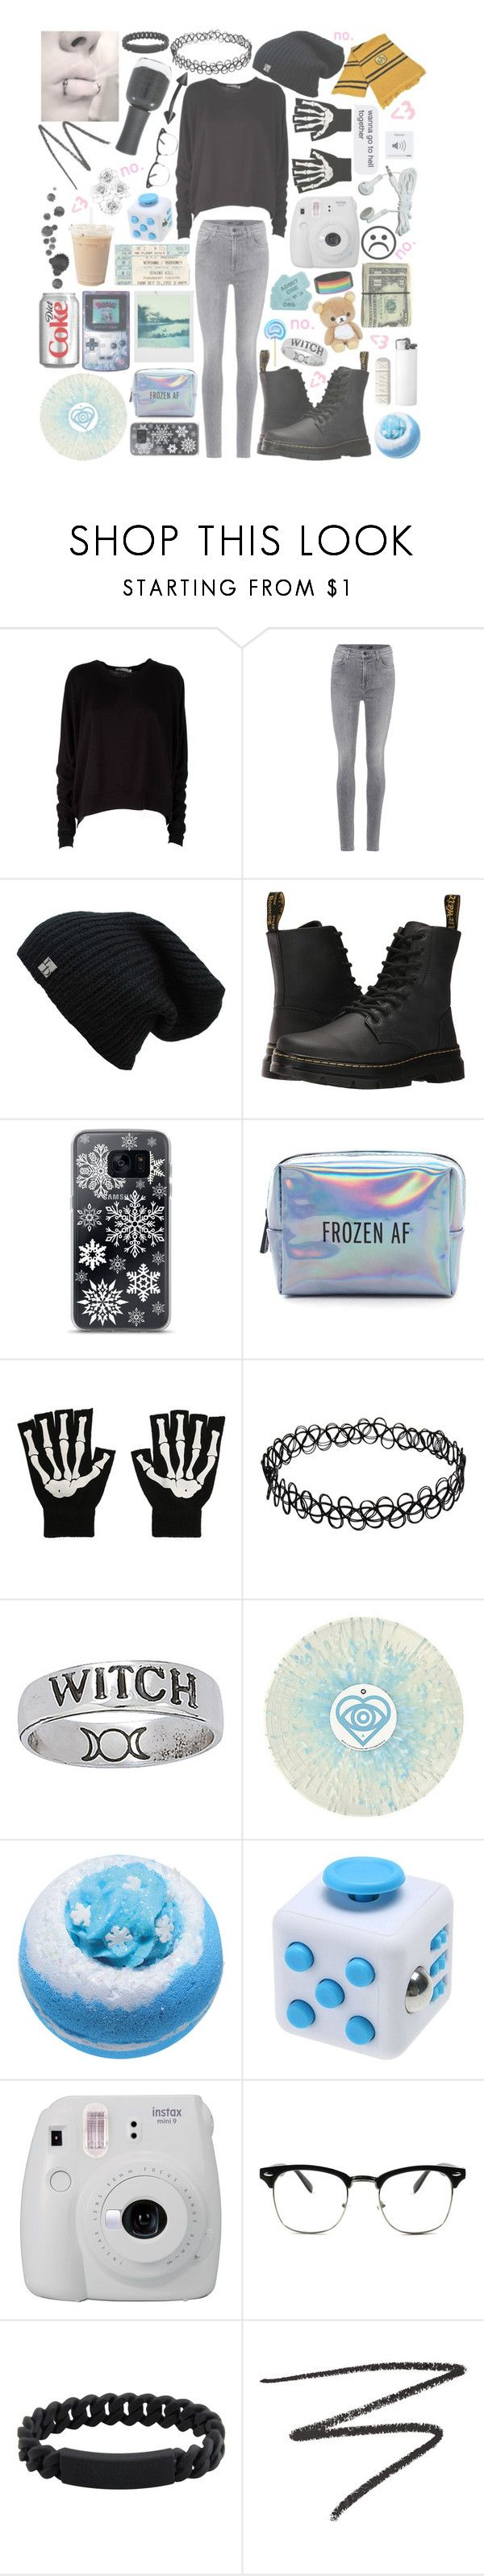 """""""w i n t e r (grunge)"""" by madmaxx01 ❤ liked on Polyvore featuring T By Alexander Wang, J Brand, Dr. Martens, Samsung, Pinch Provisions, Hot Topic, Bomb Cosmetics, Fujifilm, Marc by Marc Jacobs and Surratt"""